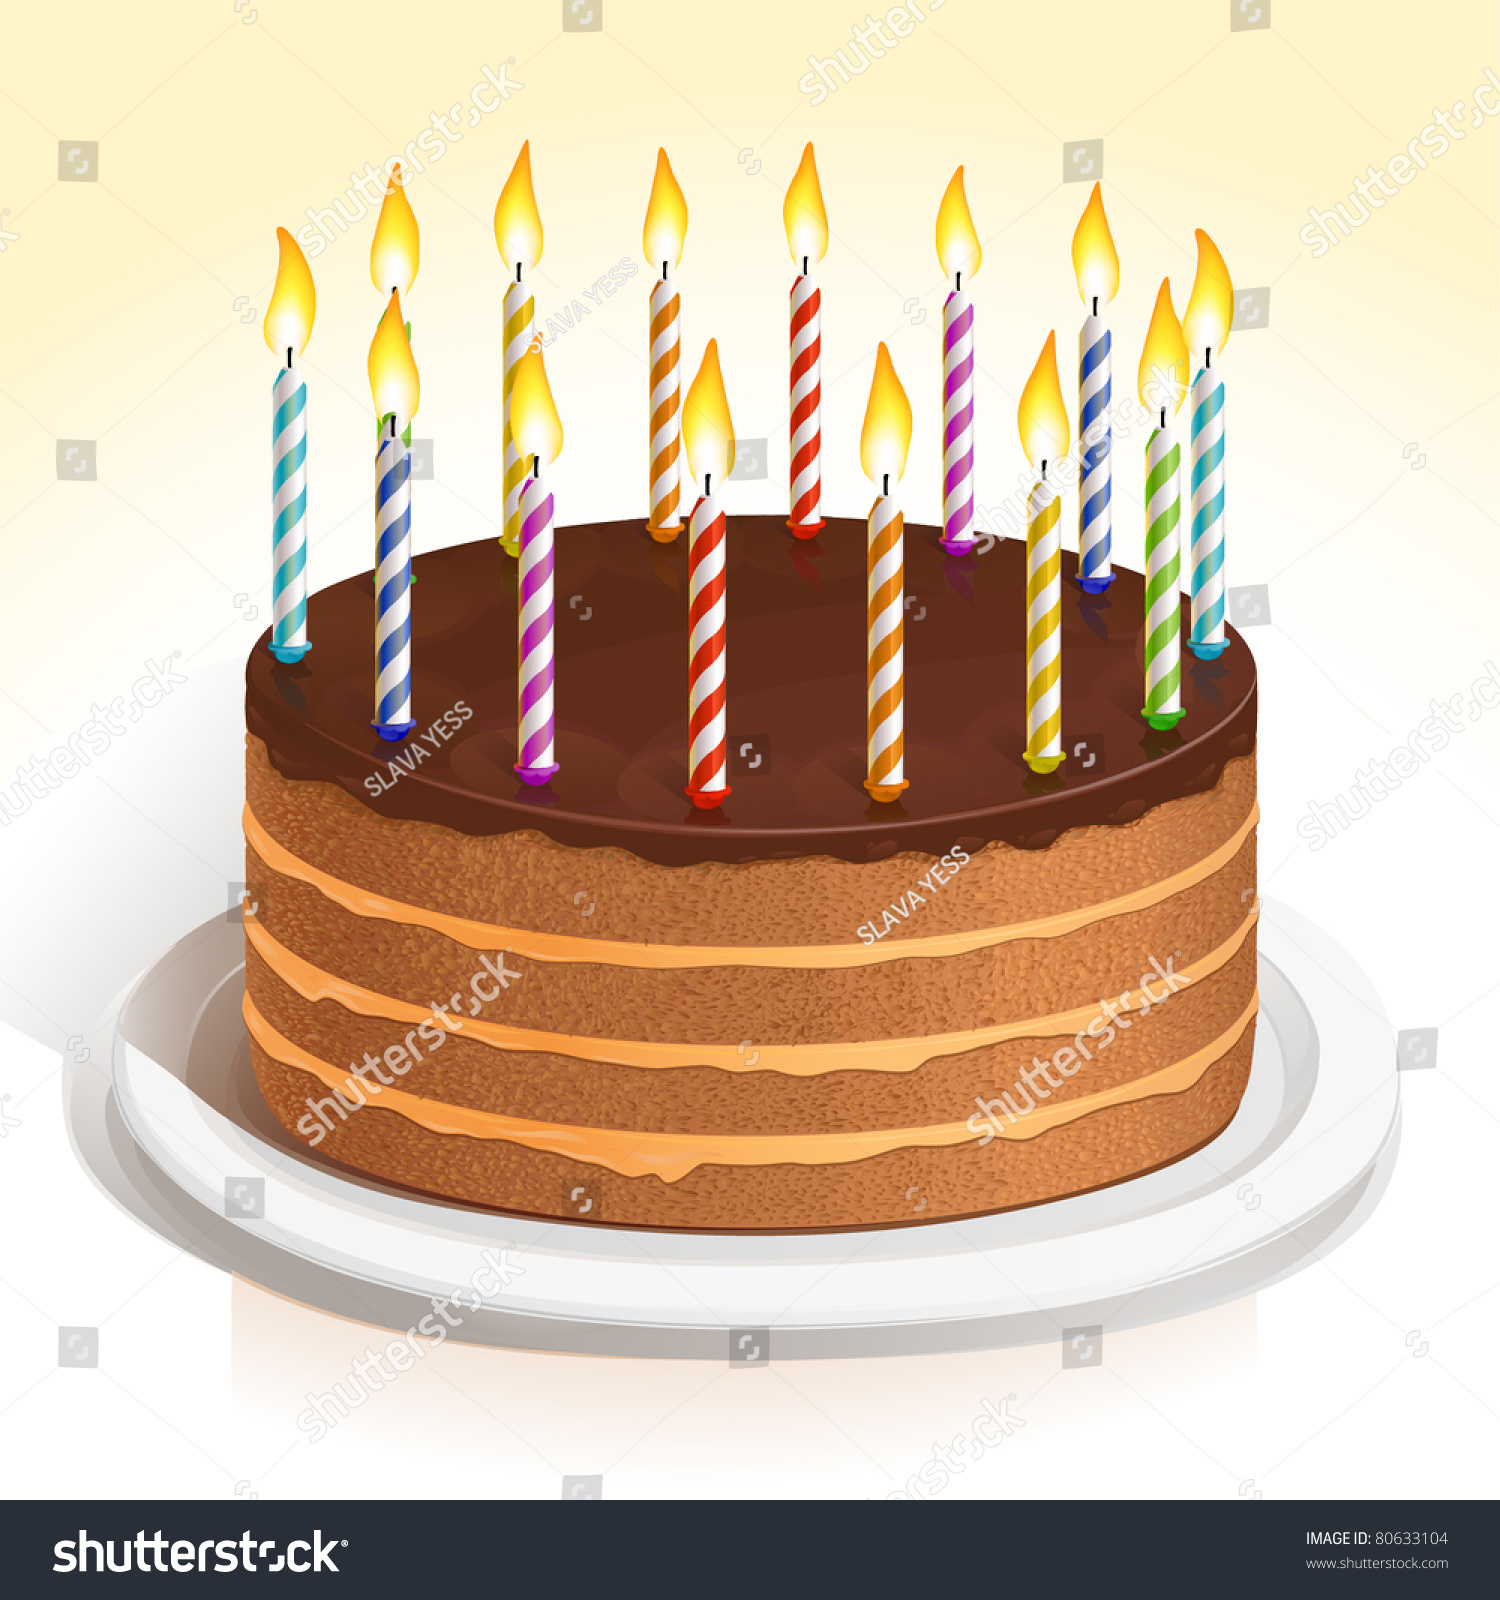 Pictures Of Birthday Cakes With Candles Lit : Vector Birthday Cake With Colorful With Lit Candles On A ...